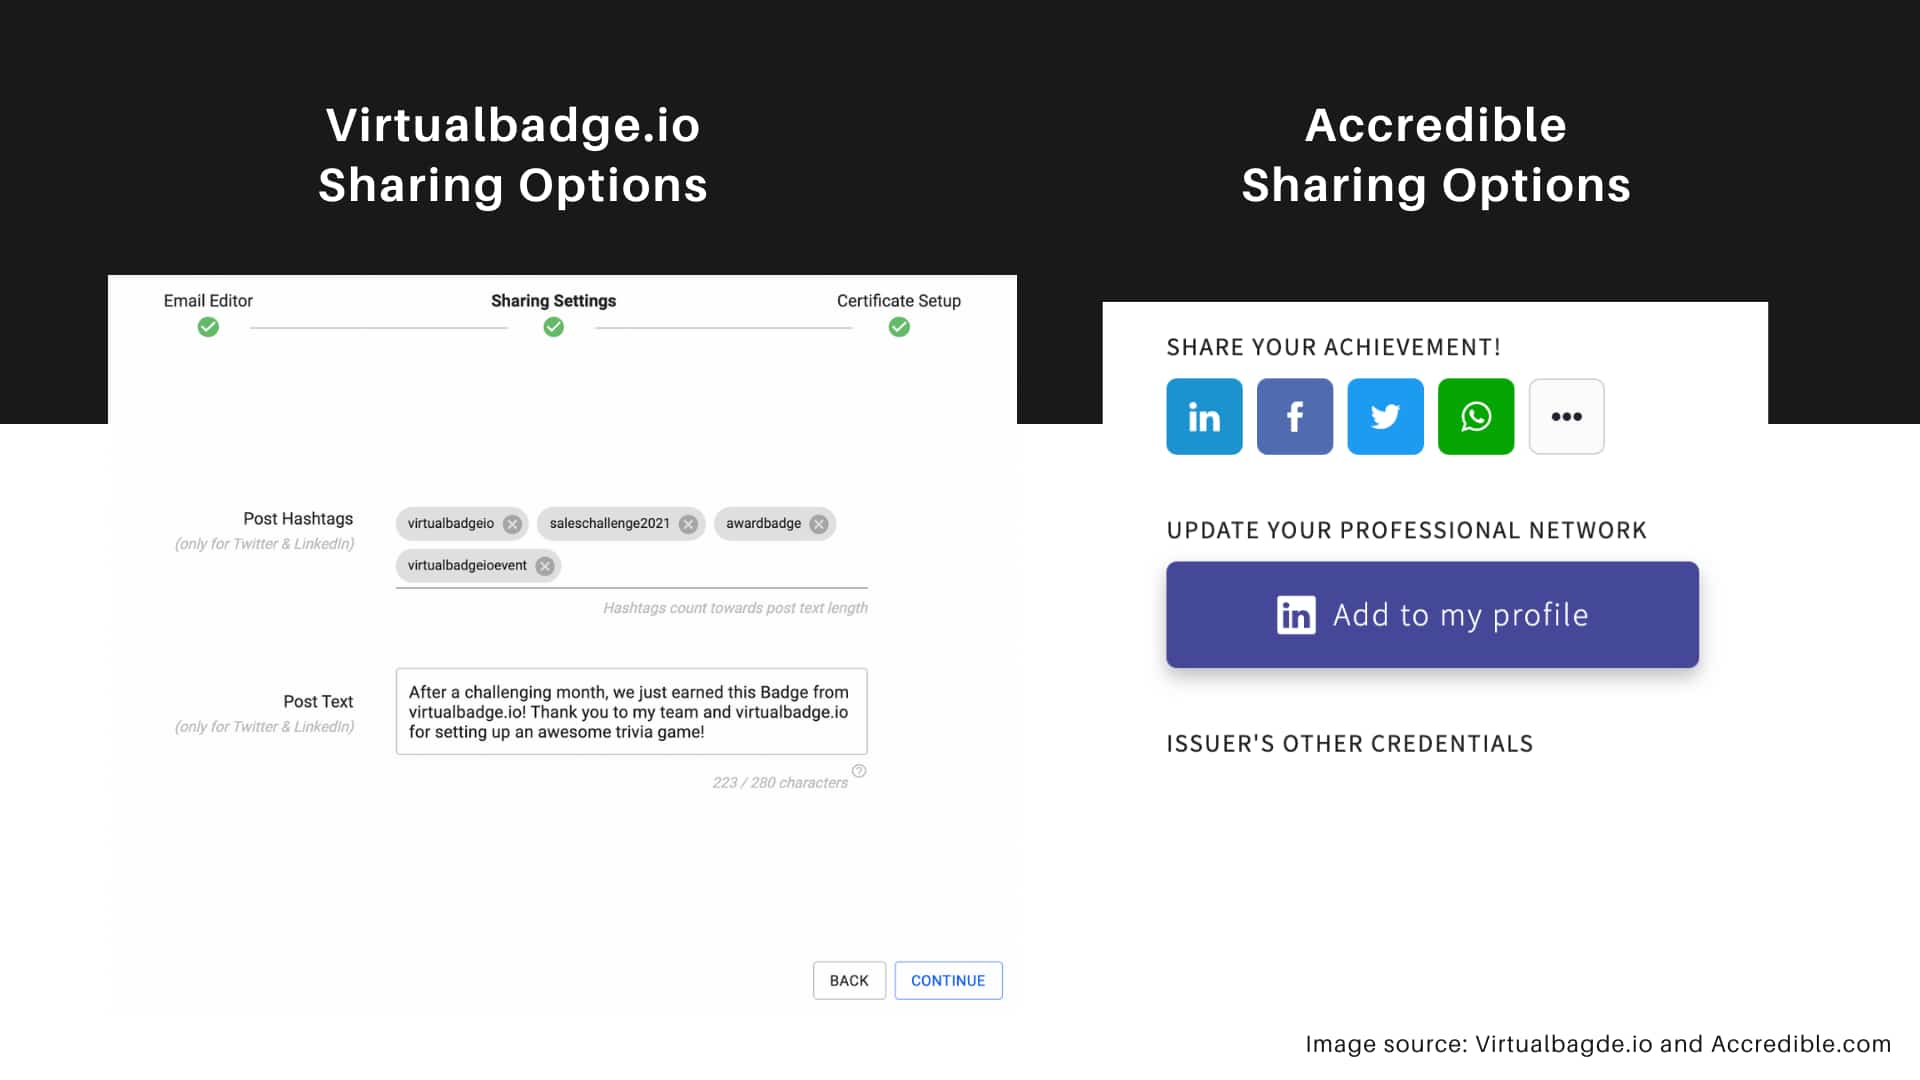 Virtualbadge.io vs Accredible software - Sharing options feature